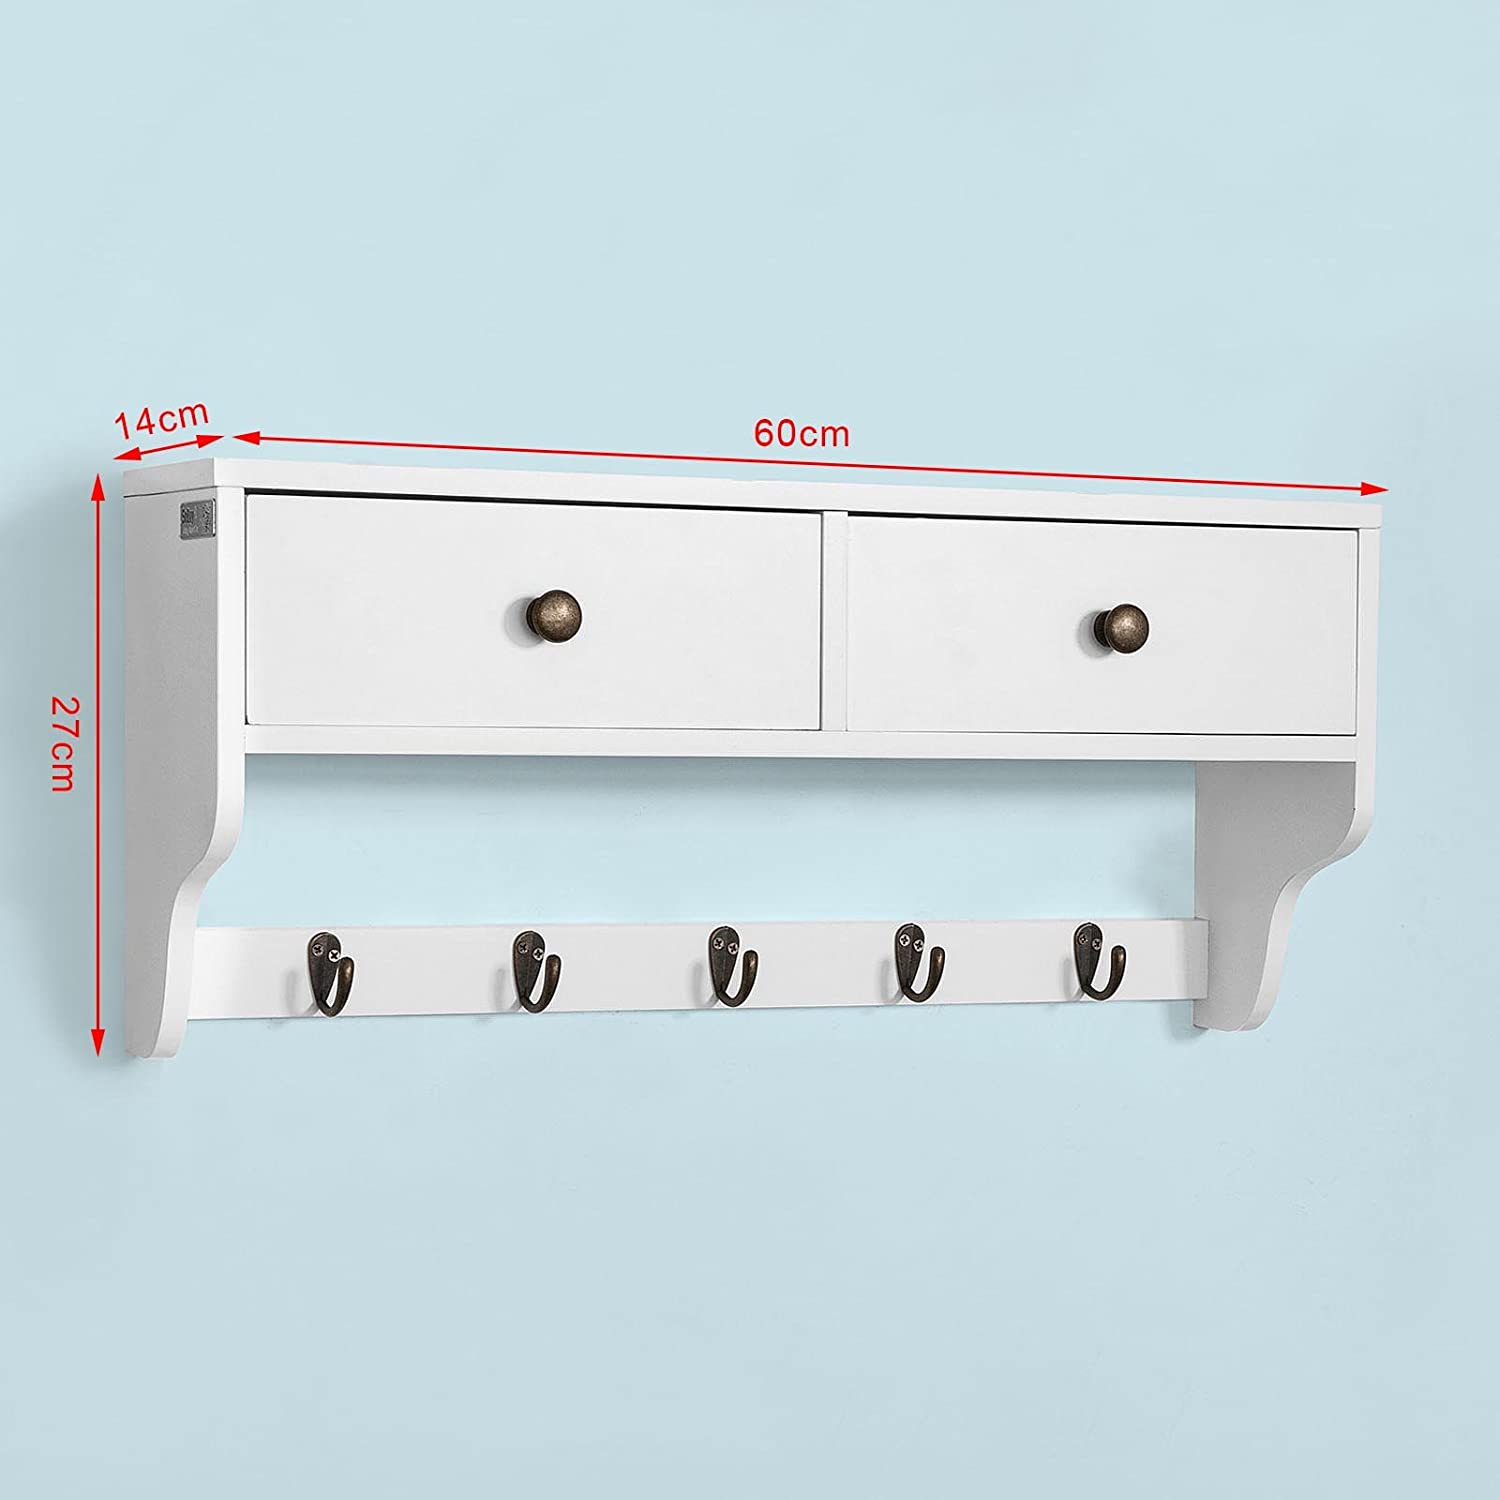 SoBuy FRG178-W,ES Moderna Estantería de Pared, Perchero, Estante de Pared, Estante, con 5 Ganchos y Dos Cajones,Blanco